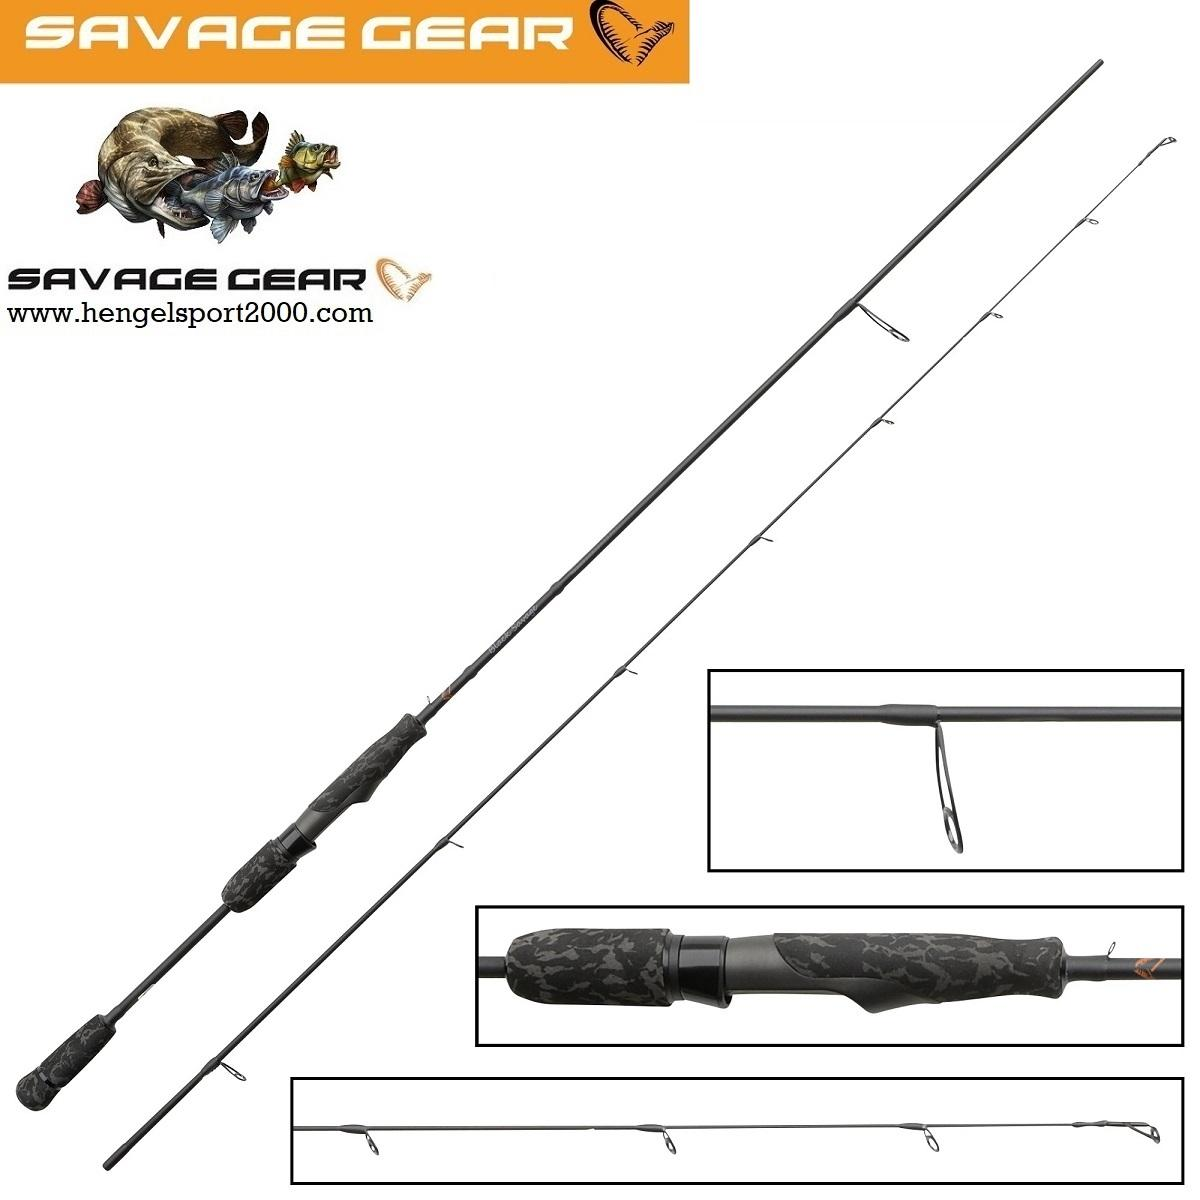 Savage Gear Black Savage Spin Rod 228 cm 5 - 20 gram